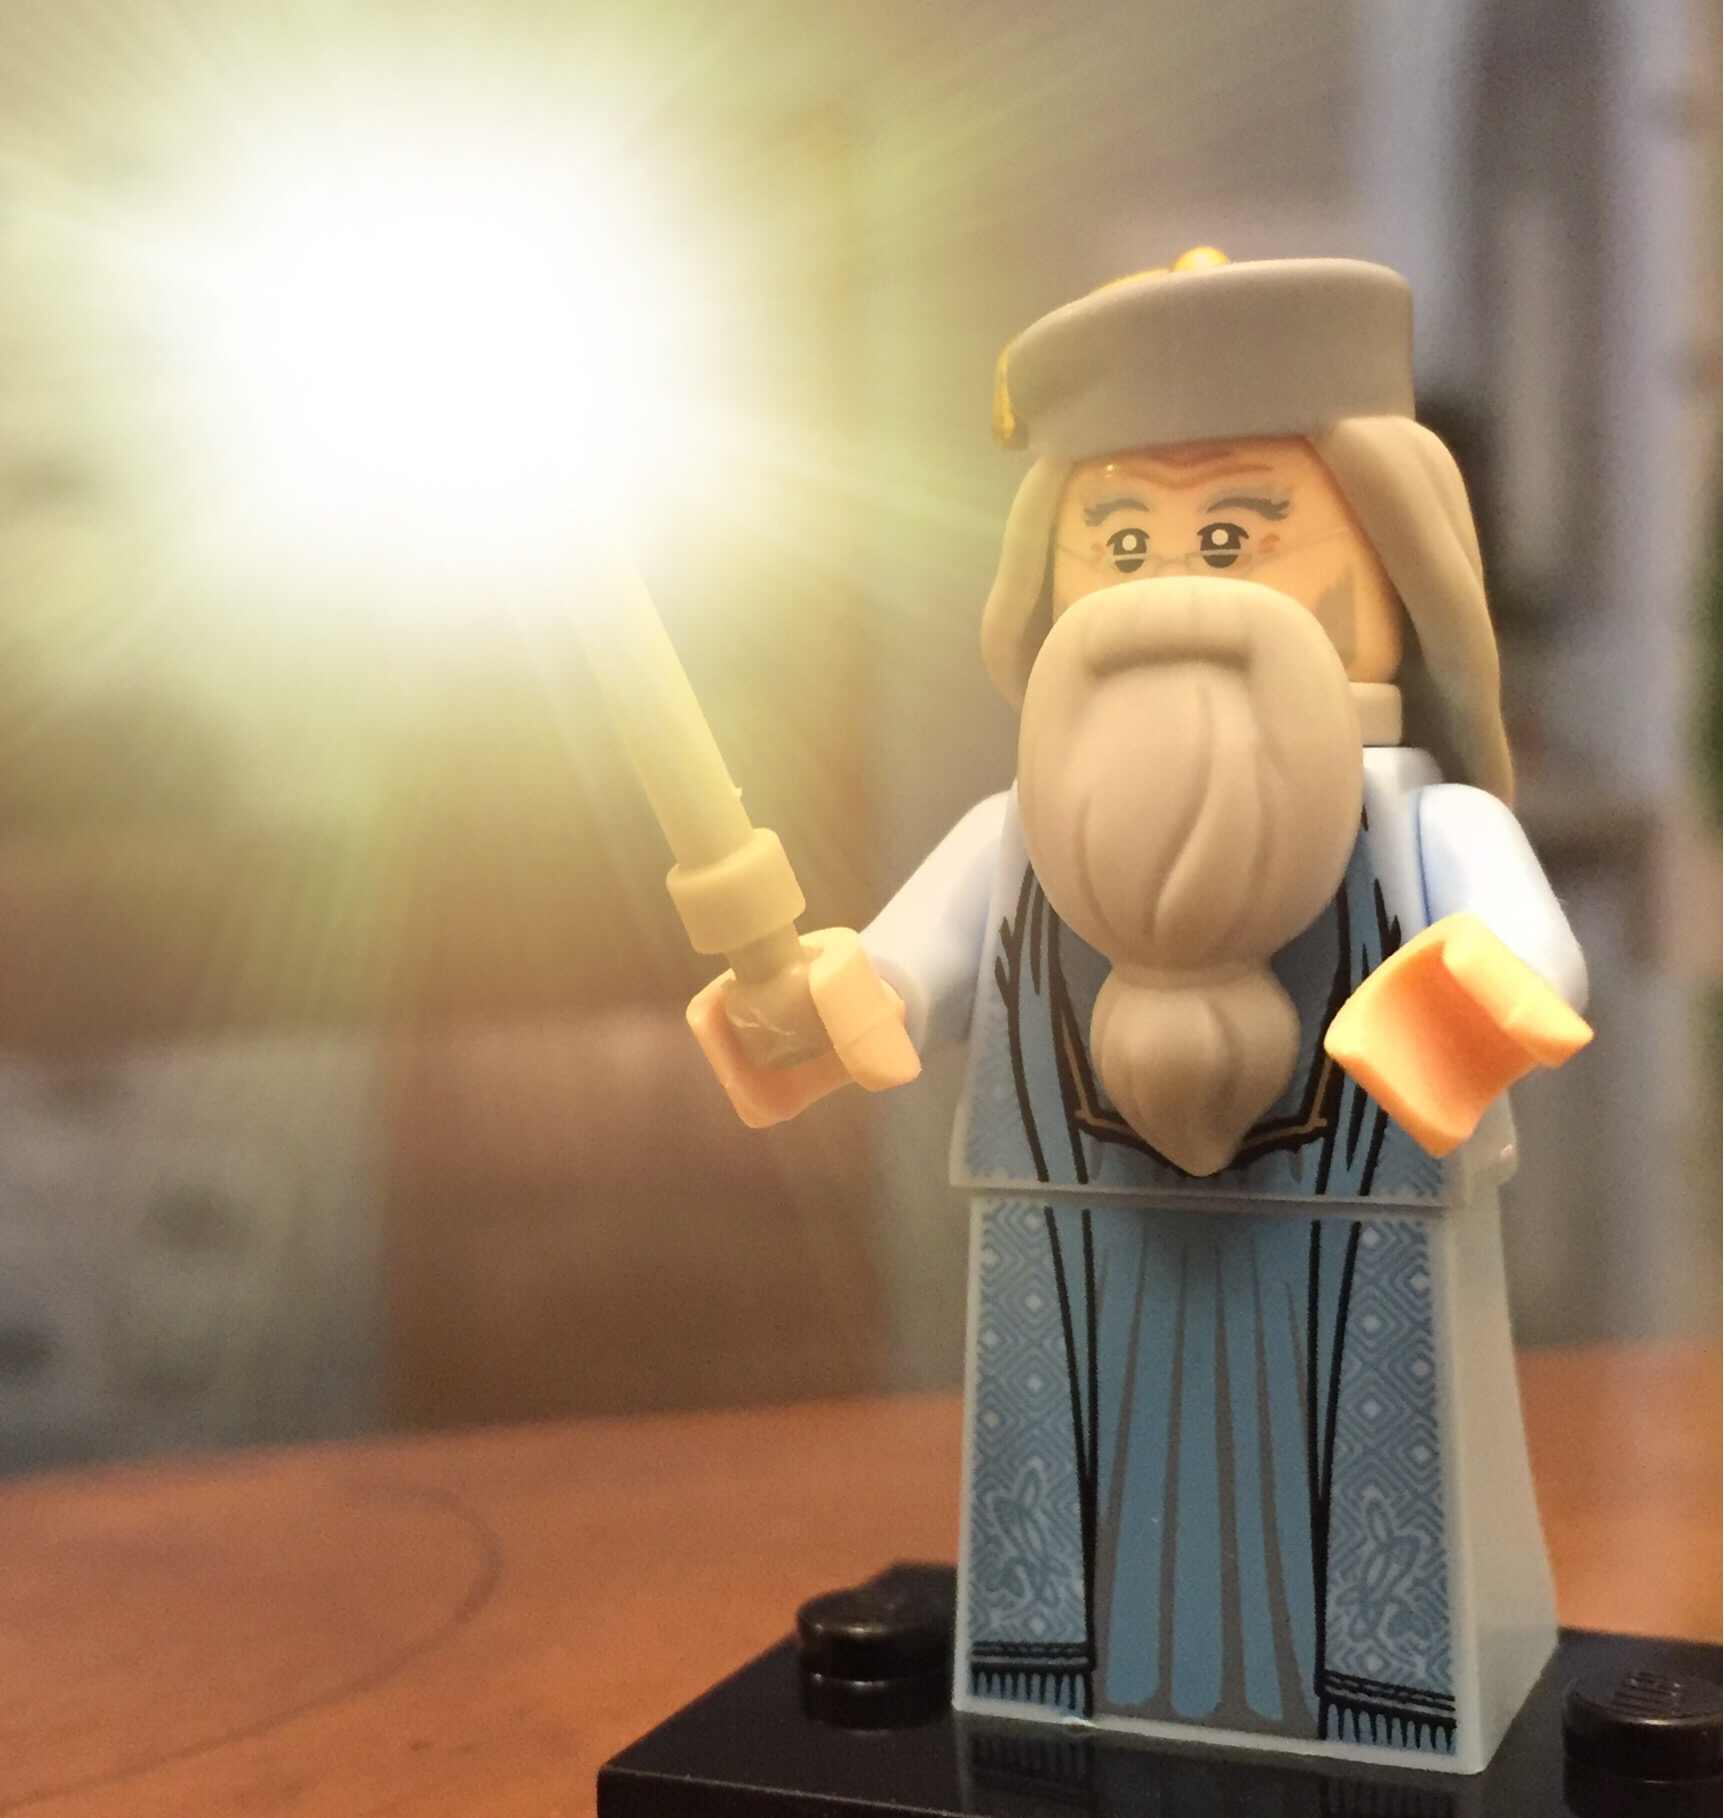 Anyone else got a new LEGO Harry Potter minifigure? I got Dumbledore.